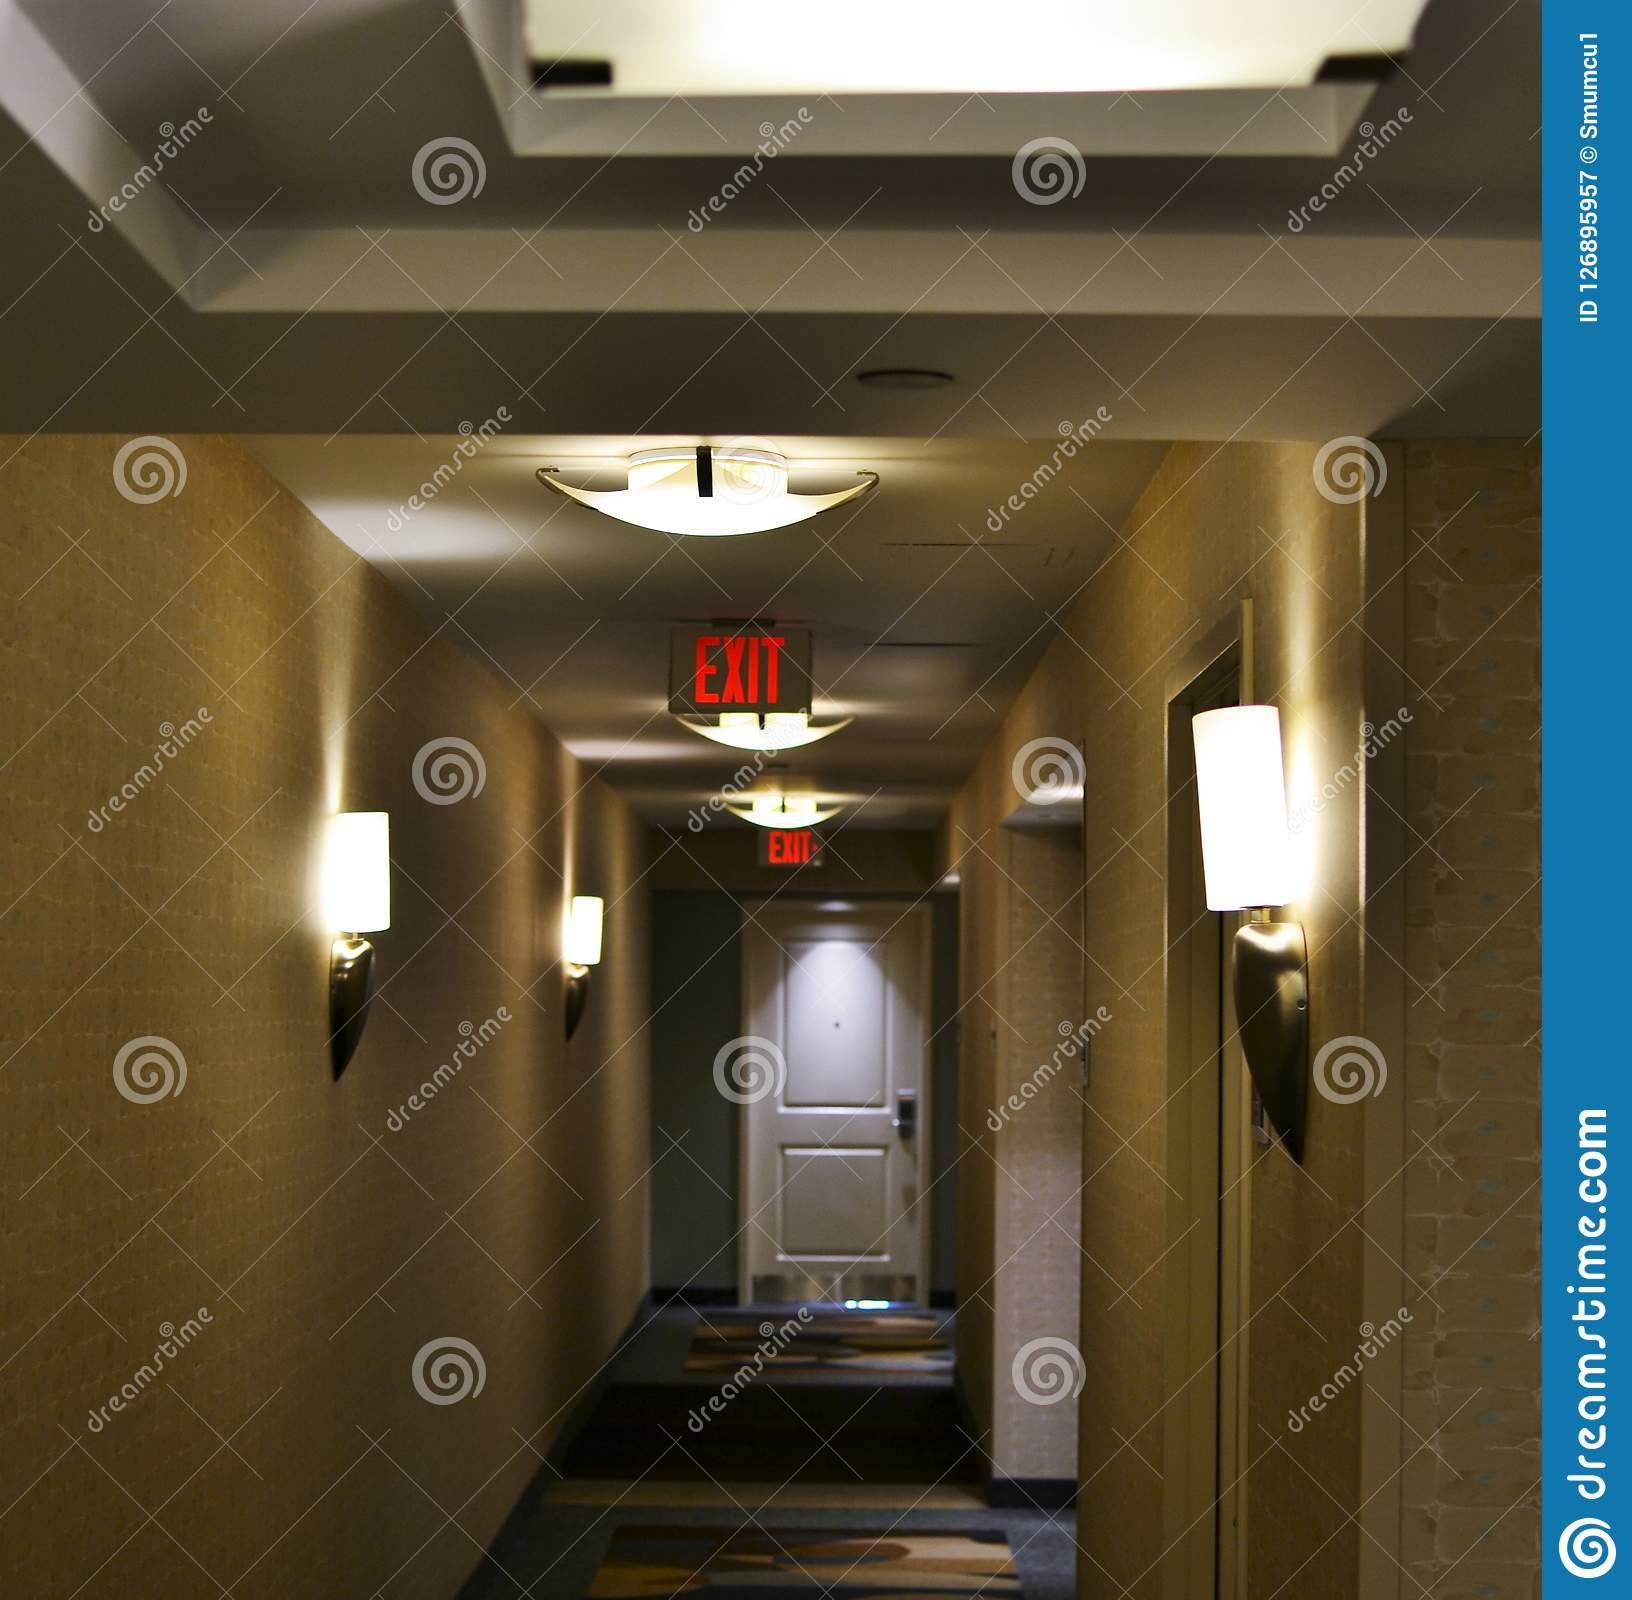 Lonely business men and empty corridors during business travel